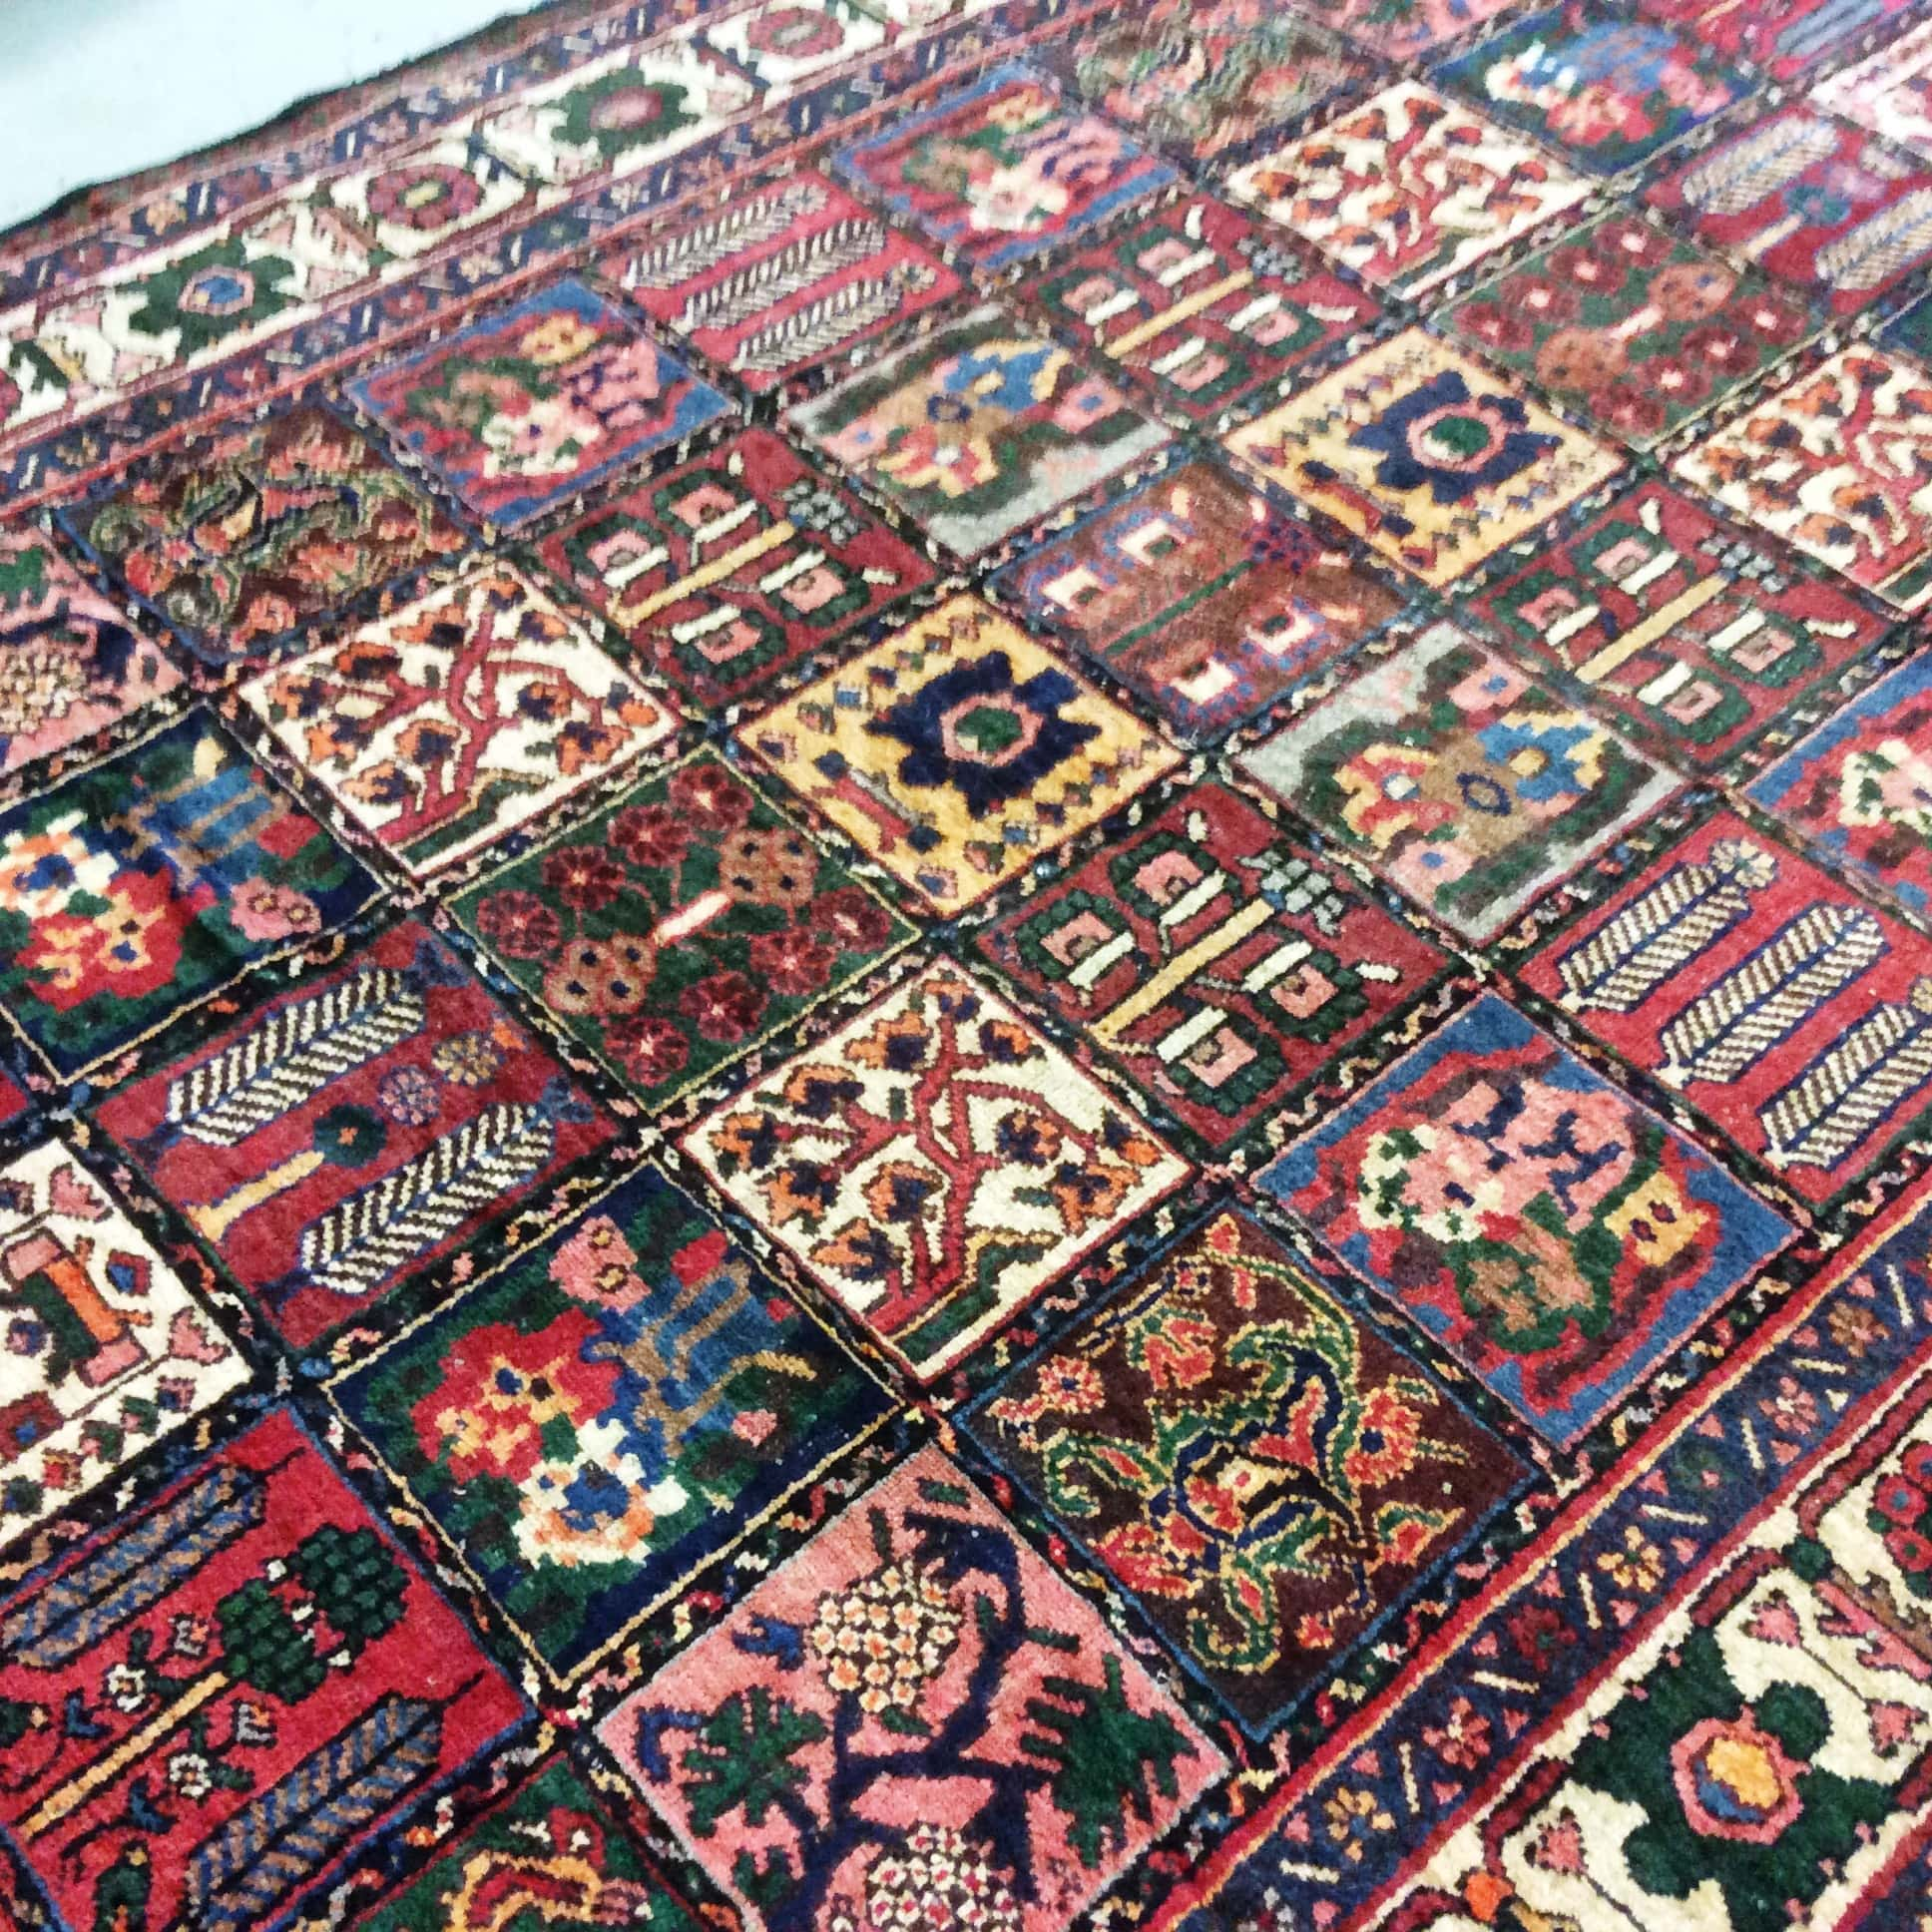 Persian Vintage Rug, Handmade Rugs, Wool Rugs, Richmond